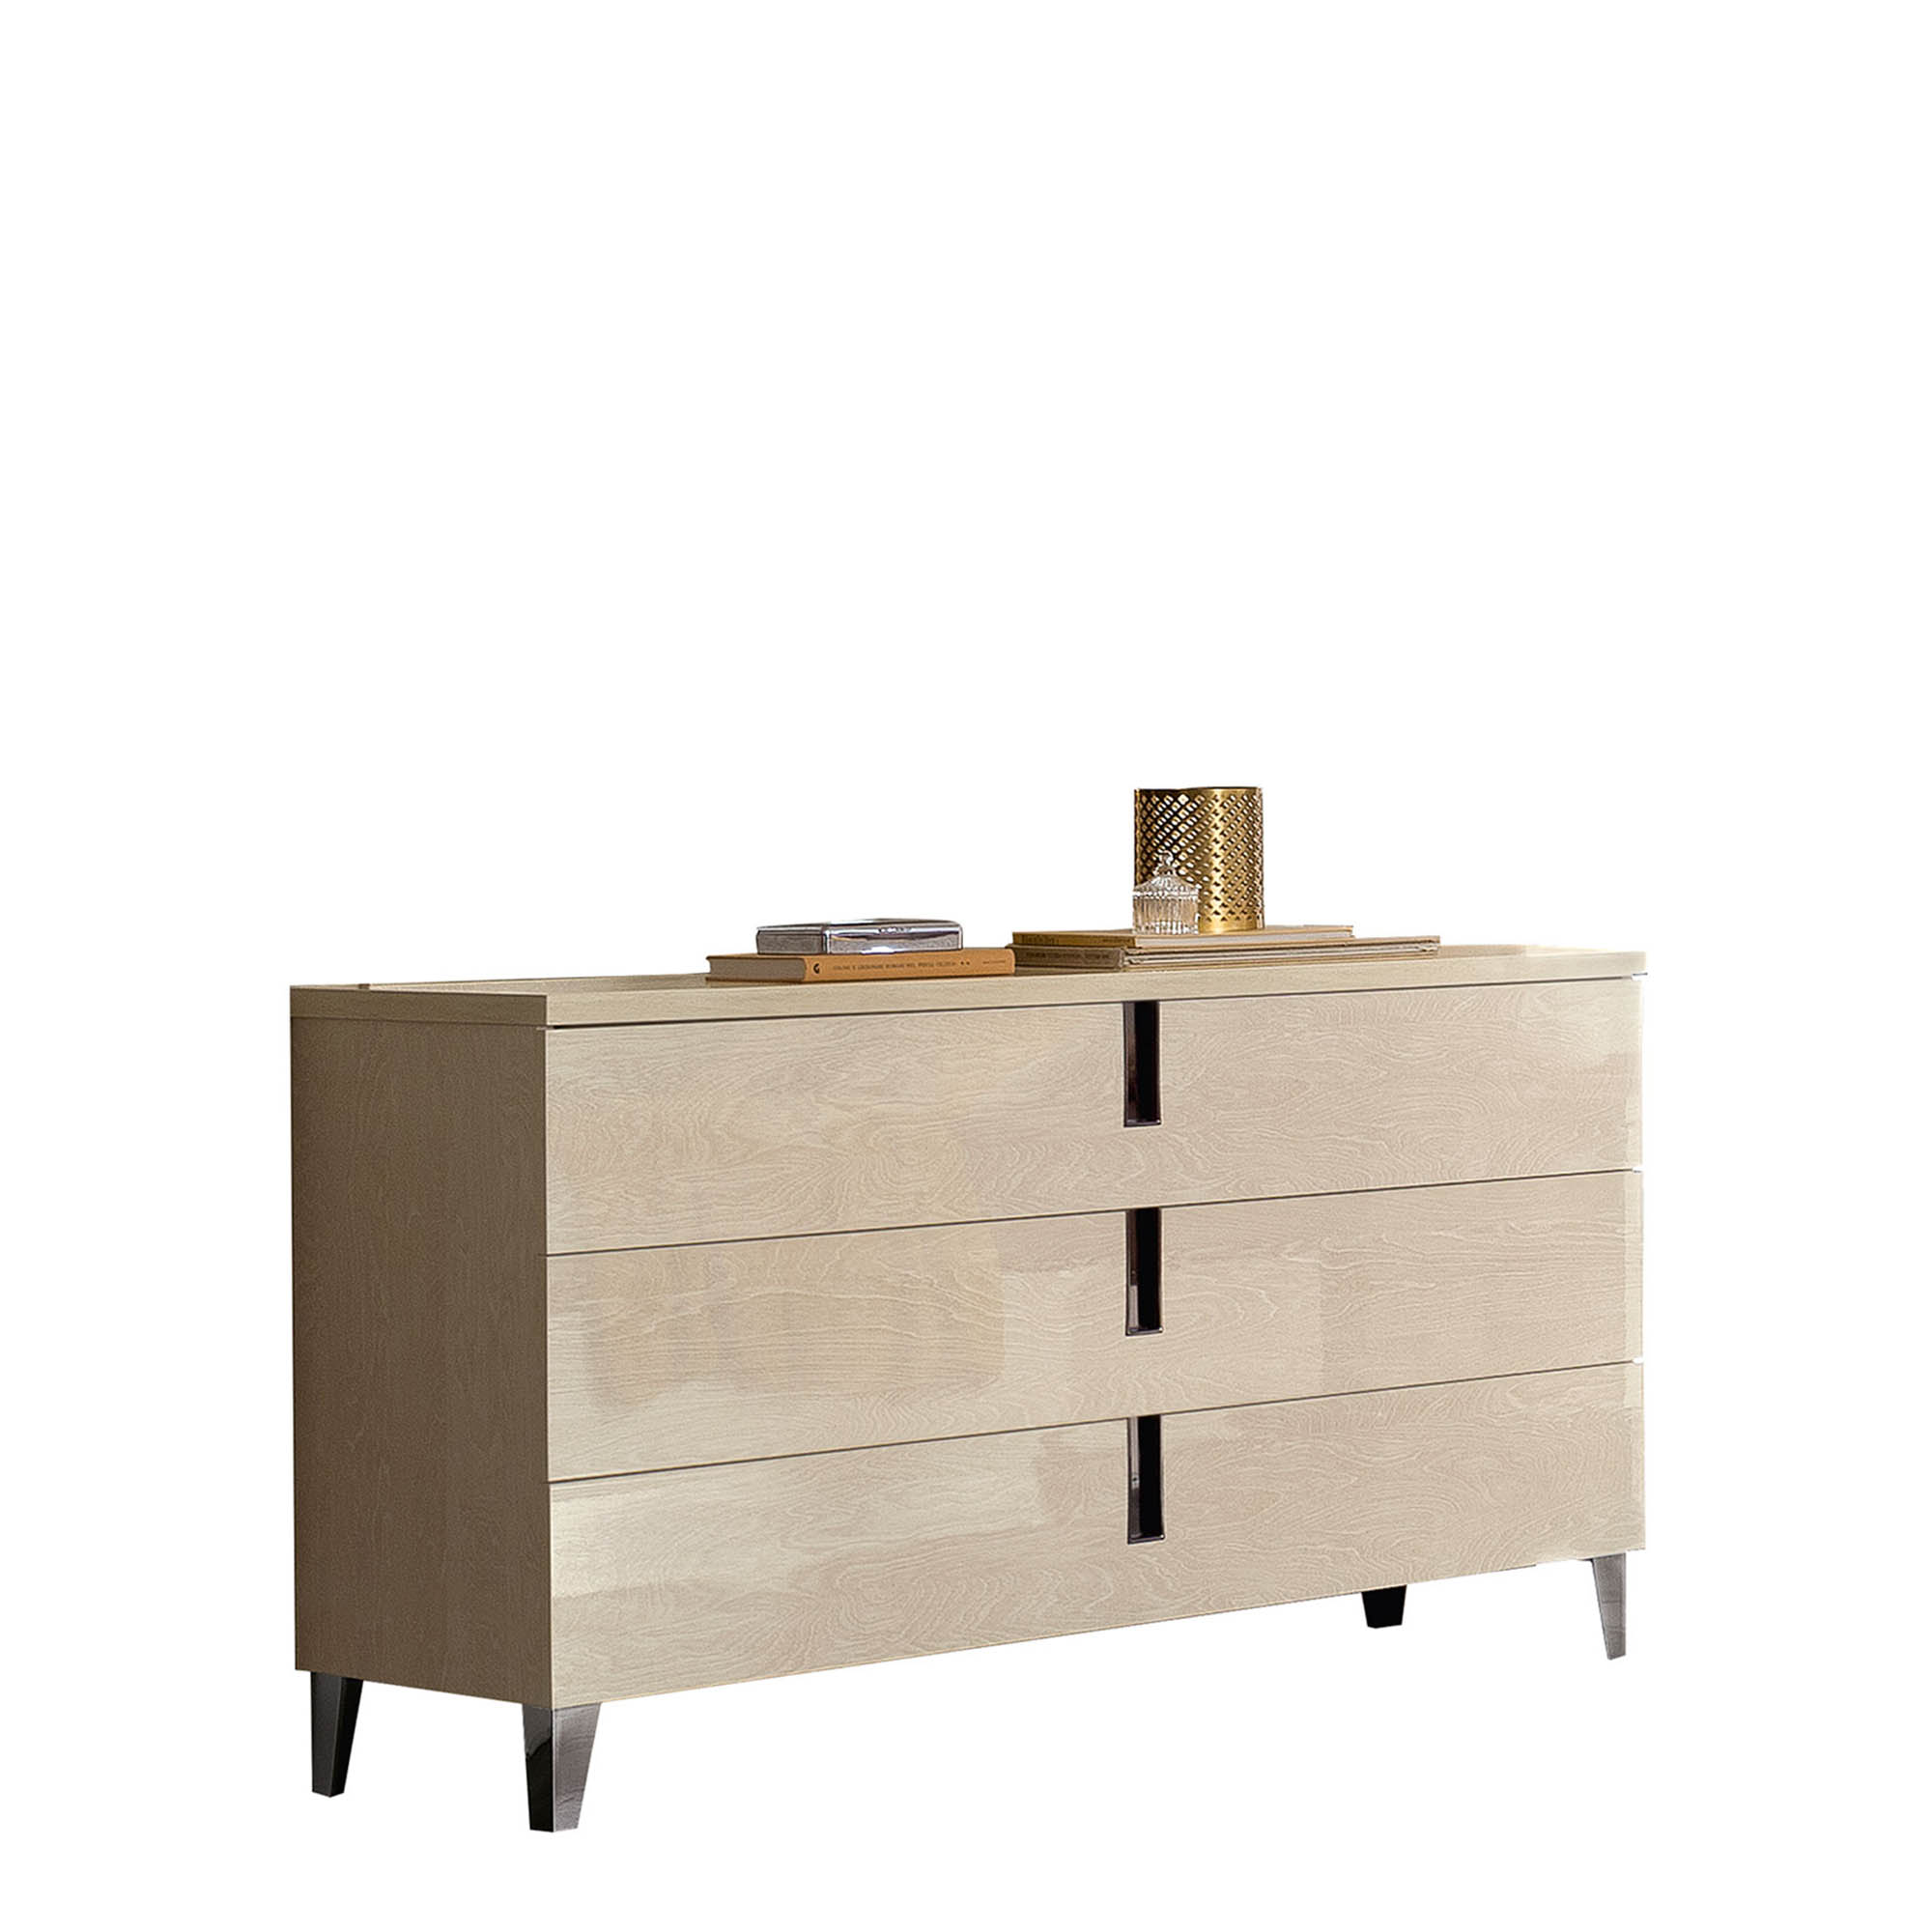 Venice Single Dresser 3 Drawers High Gloss Cream Lacquer Bedroom Chests Fishpools